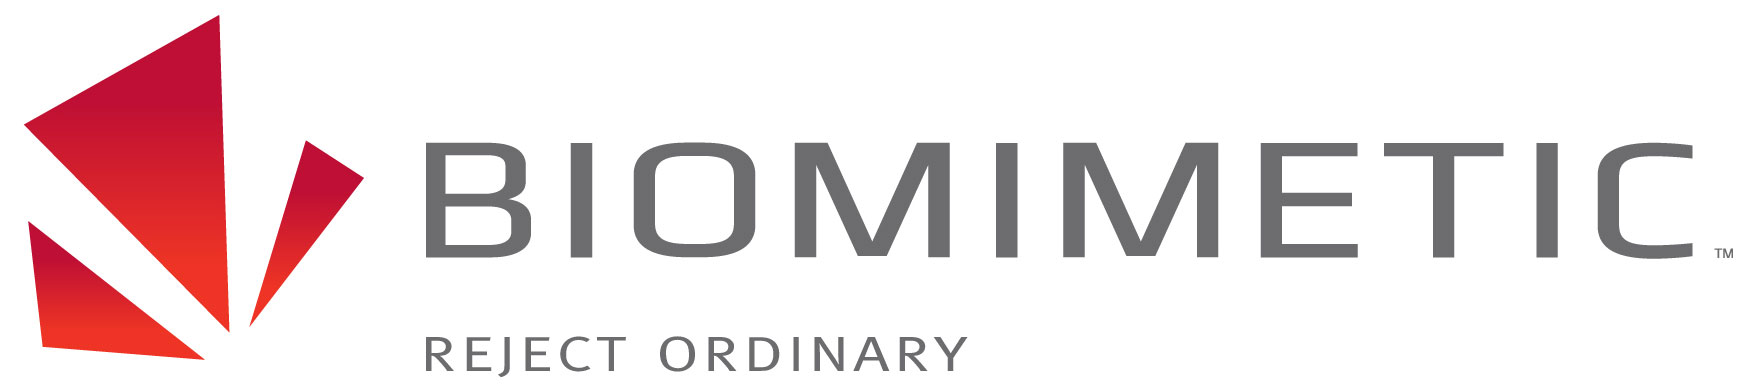 Biomimetic logo